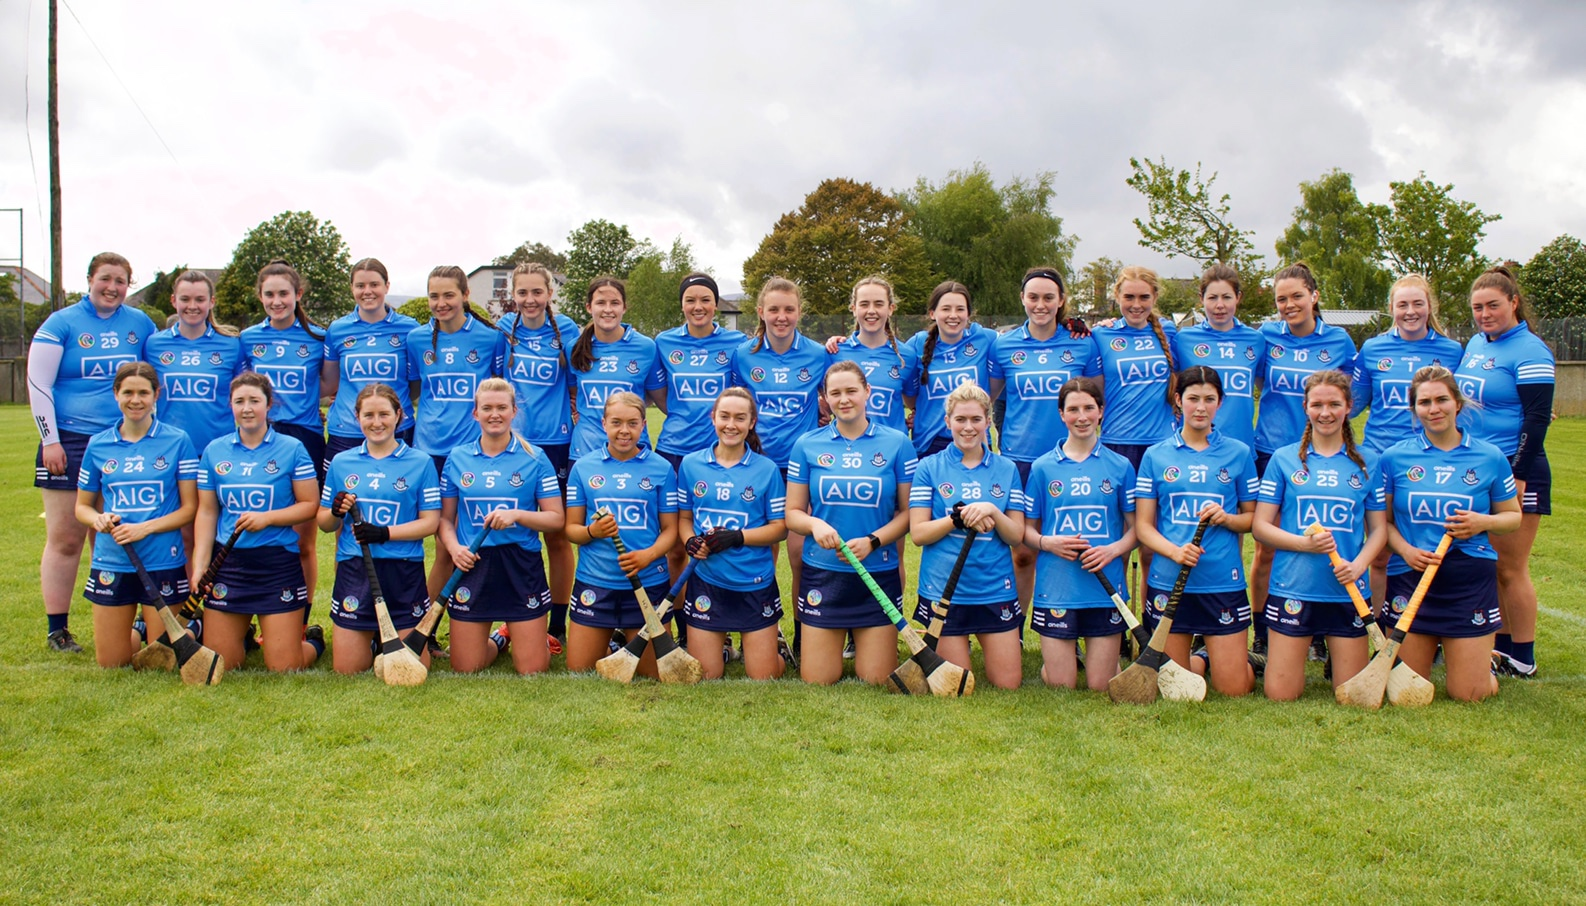 The Dublin Intermediate squad pictured before a game, the Dublin Inters opening championship game is tomorrow against Meath